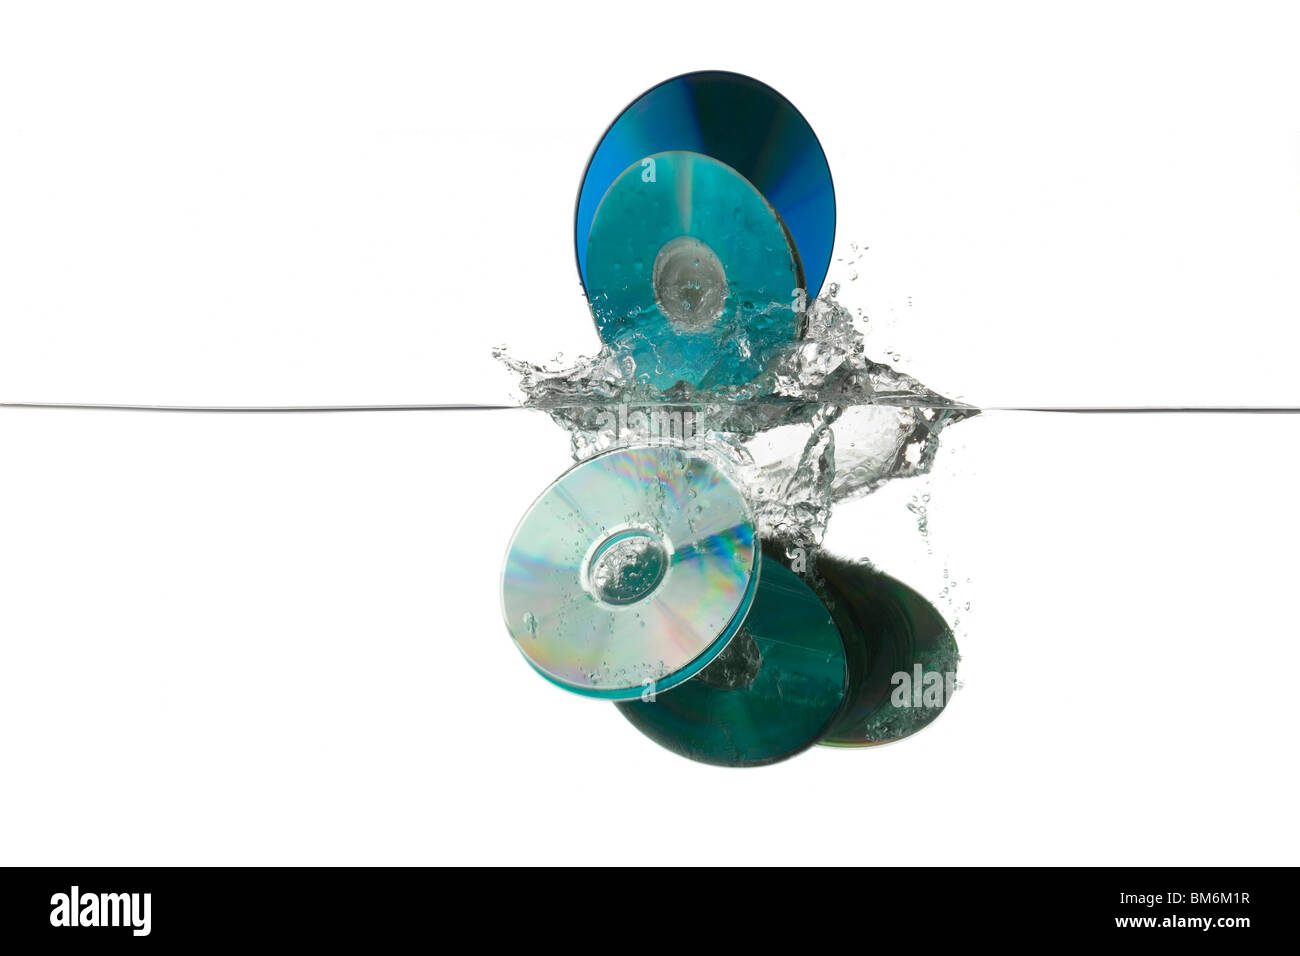 old CDs thrown away - Stock Image